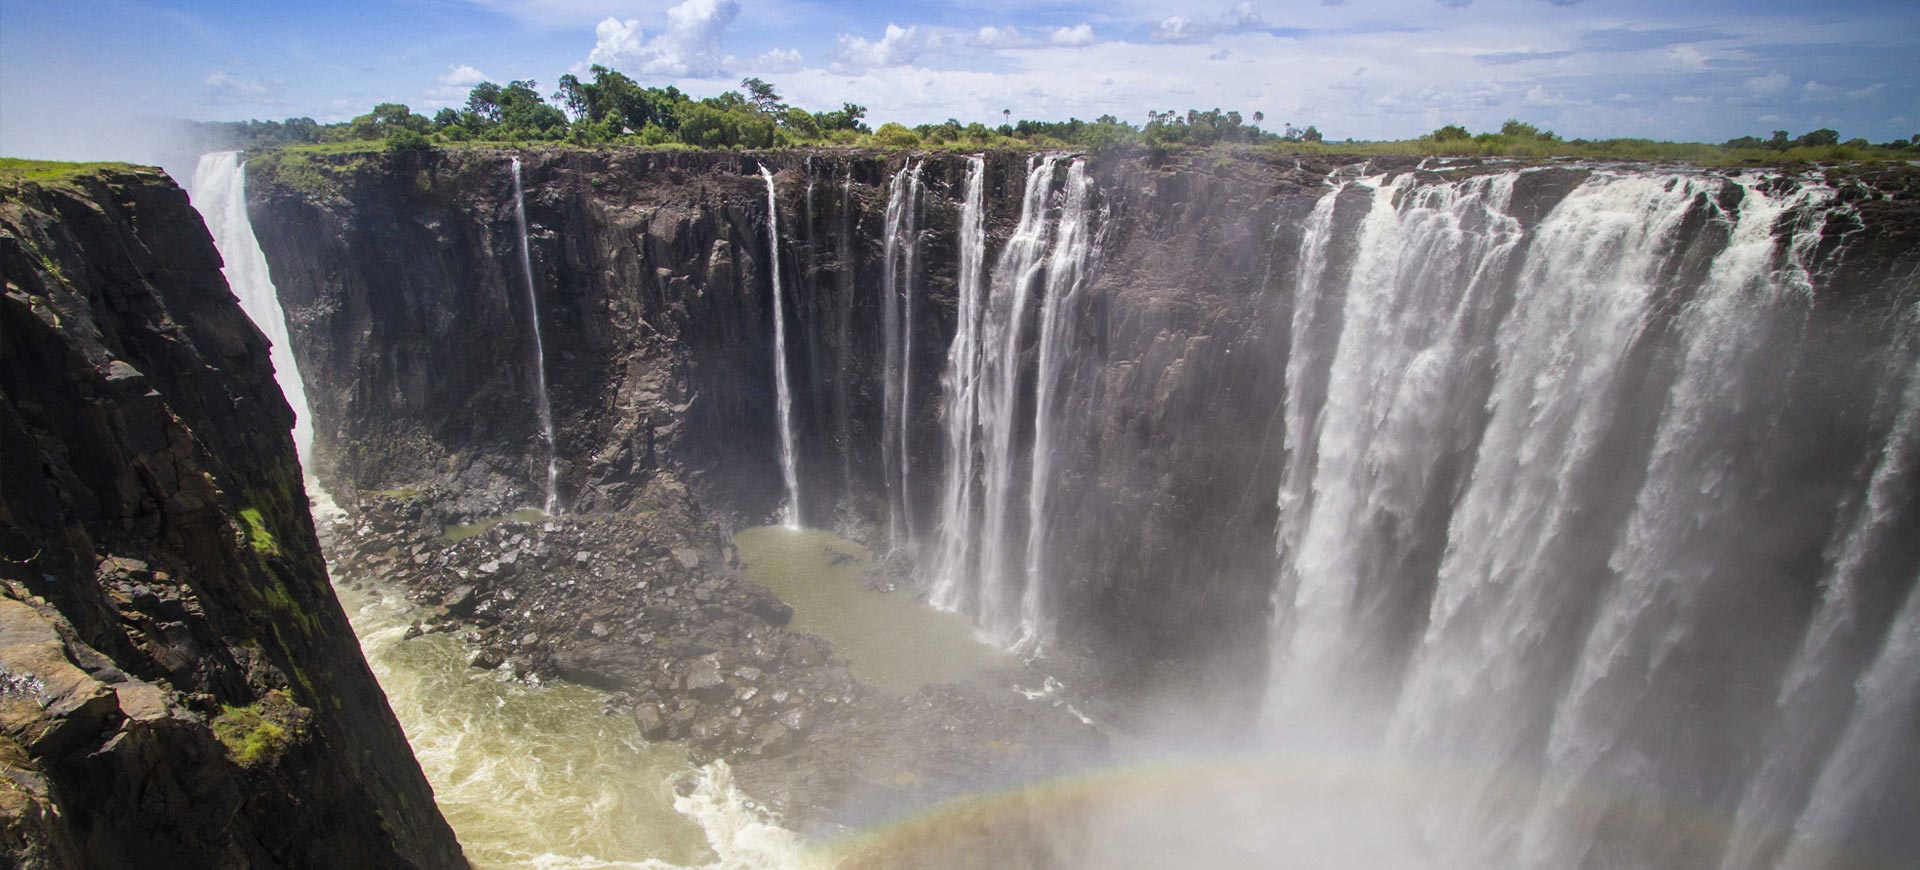 Victoria Falls Conference Waterfall Guided Tour